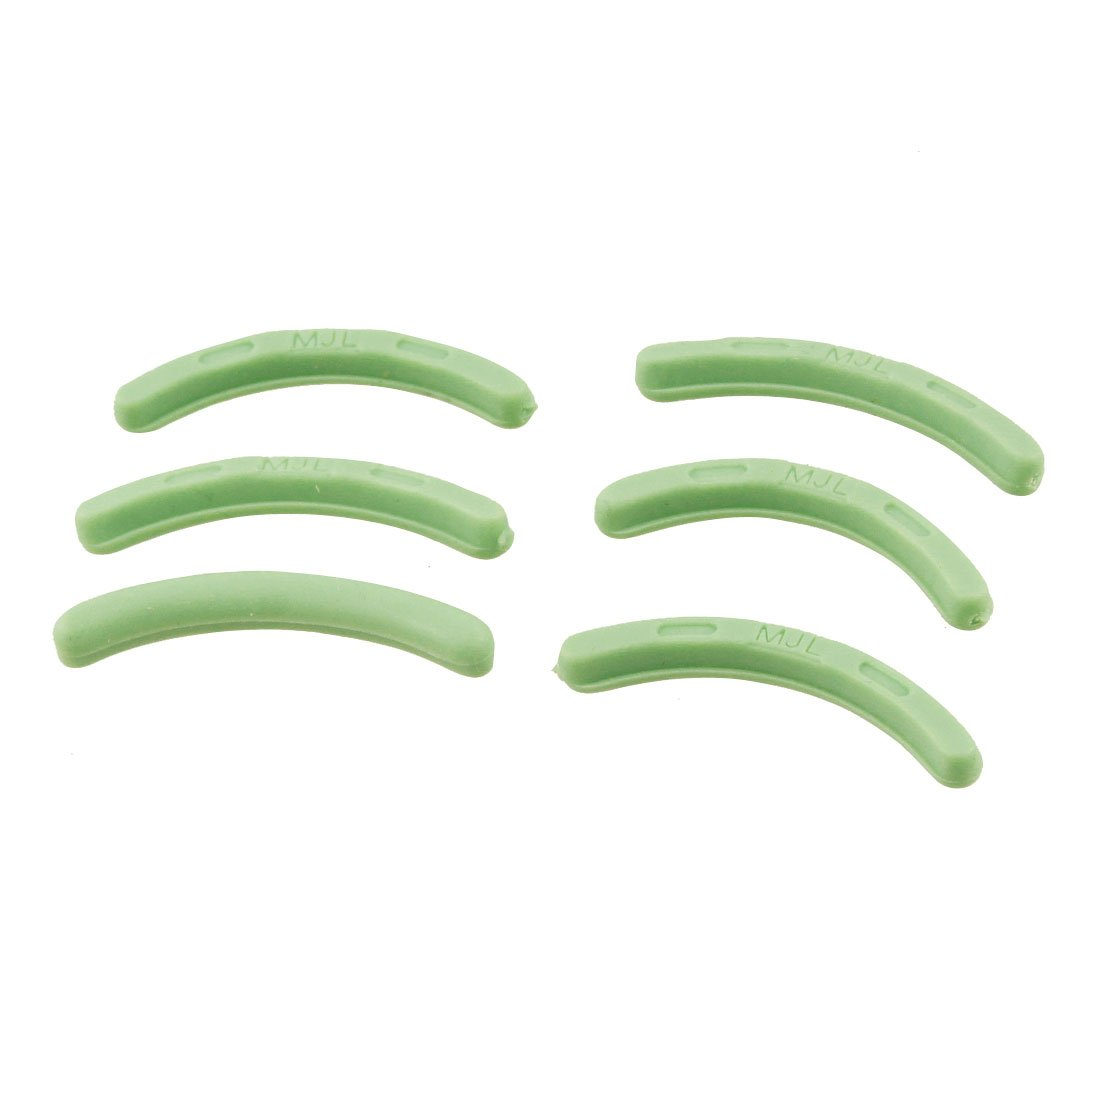 uxcell 6 Pcs Green Cosmetic Accessories Rubber Replacement Eyelash Curler Pad a12051800ux0114